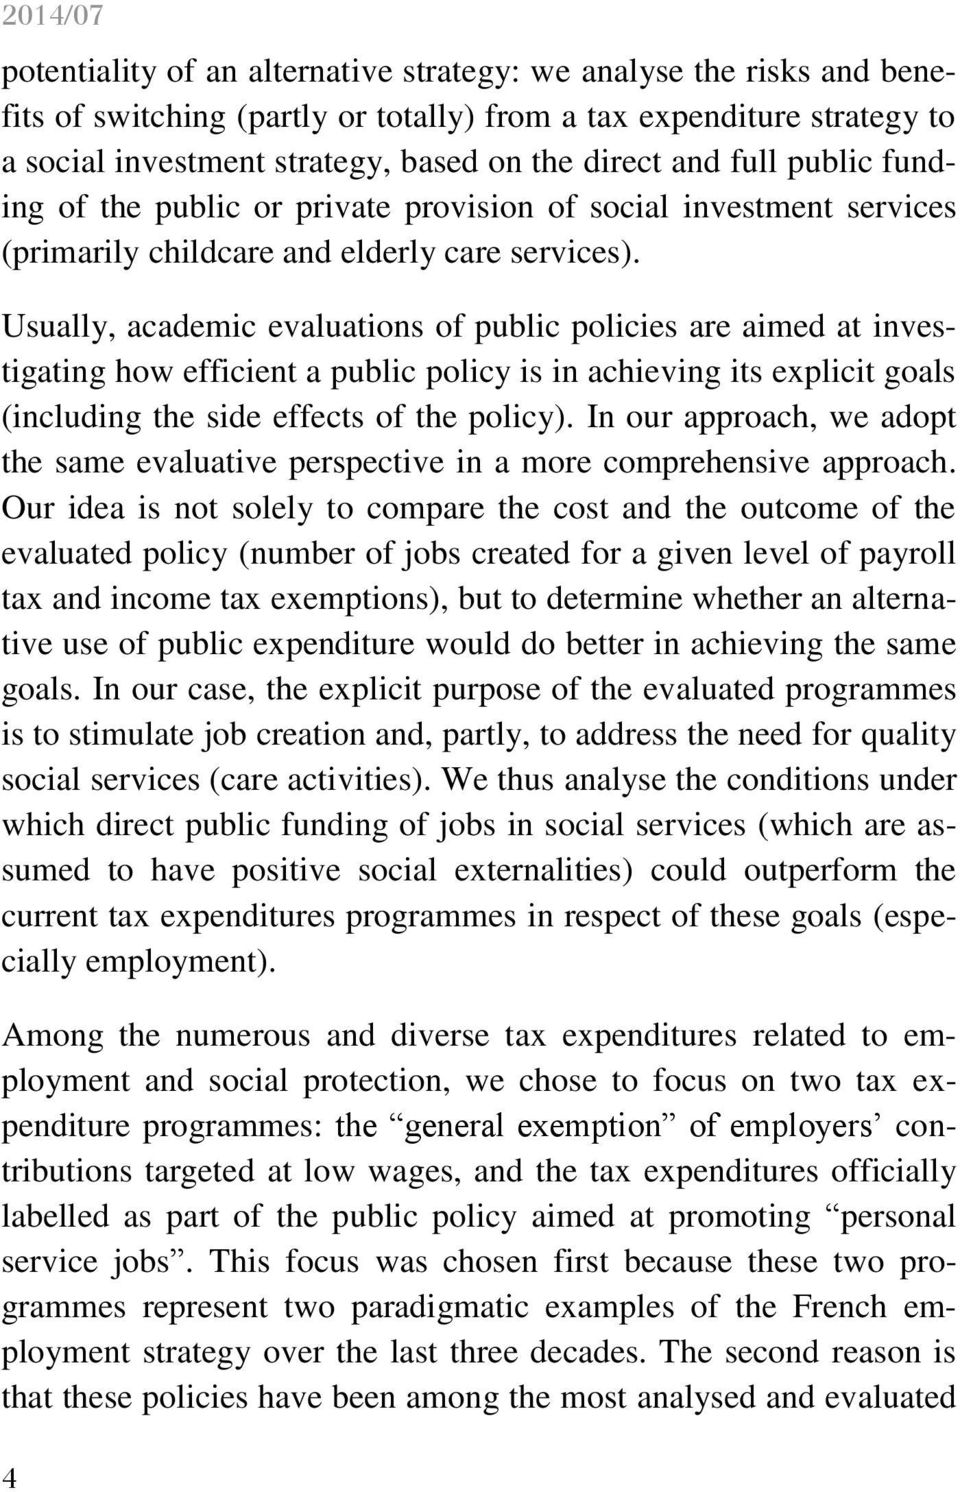 Usually, academic evaluations of public policies are aimed at investigating how efficient a public policy is in achieving its explicit goals (including the side effects of the policy).